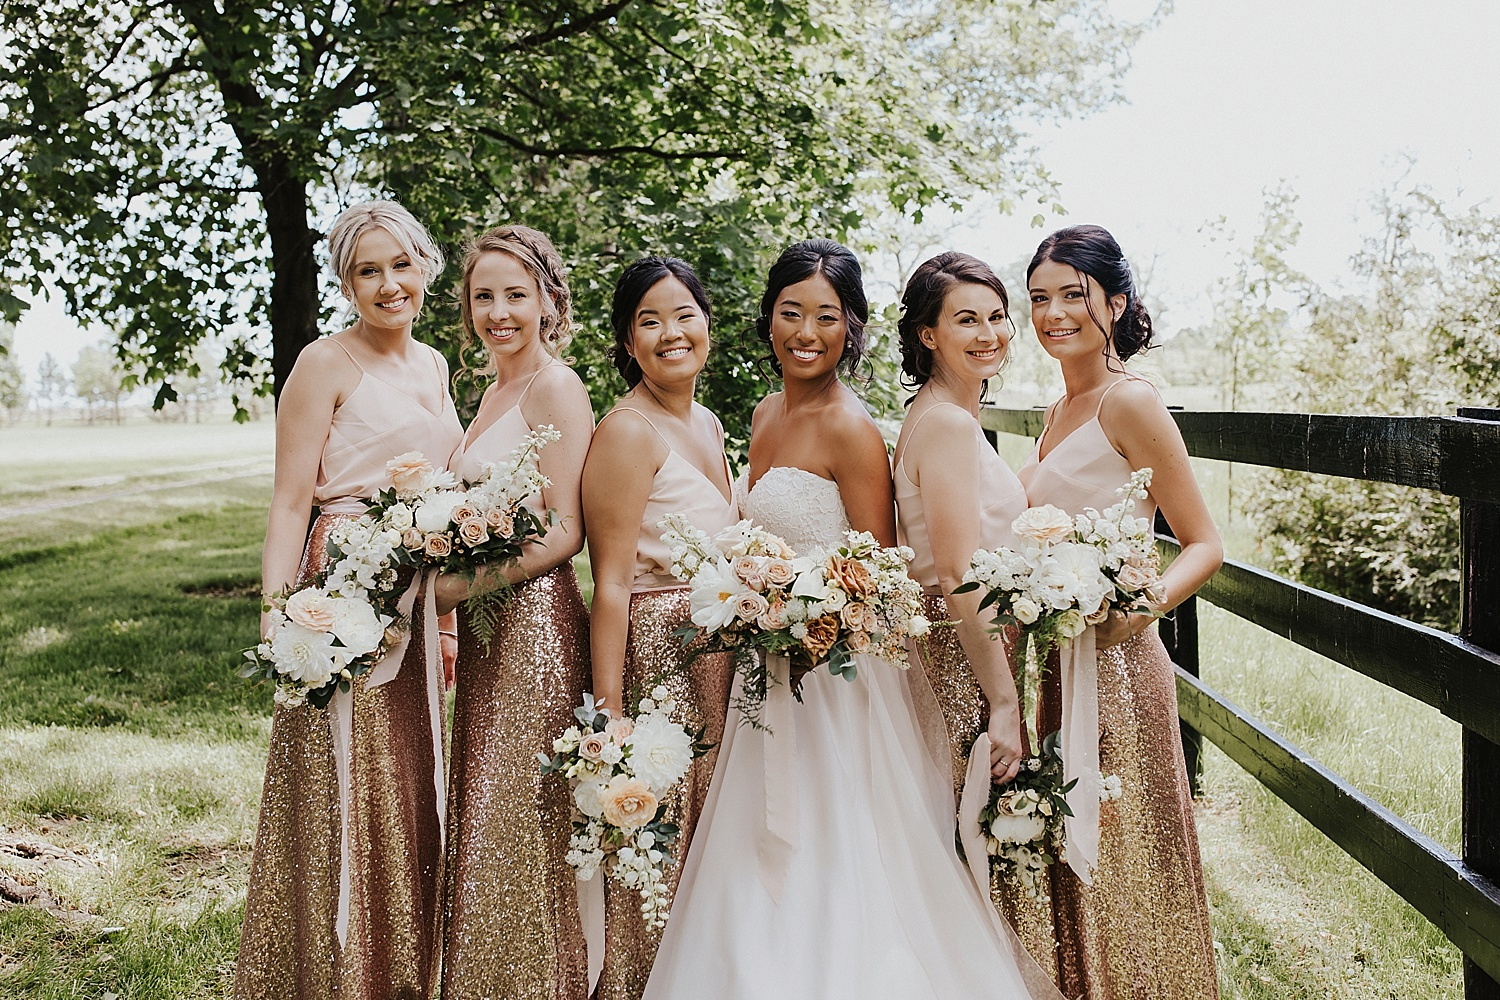 Bridal party smiling